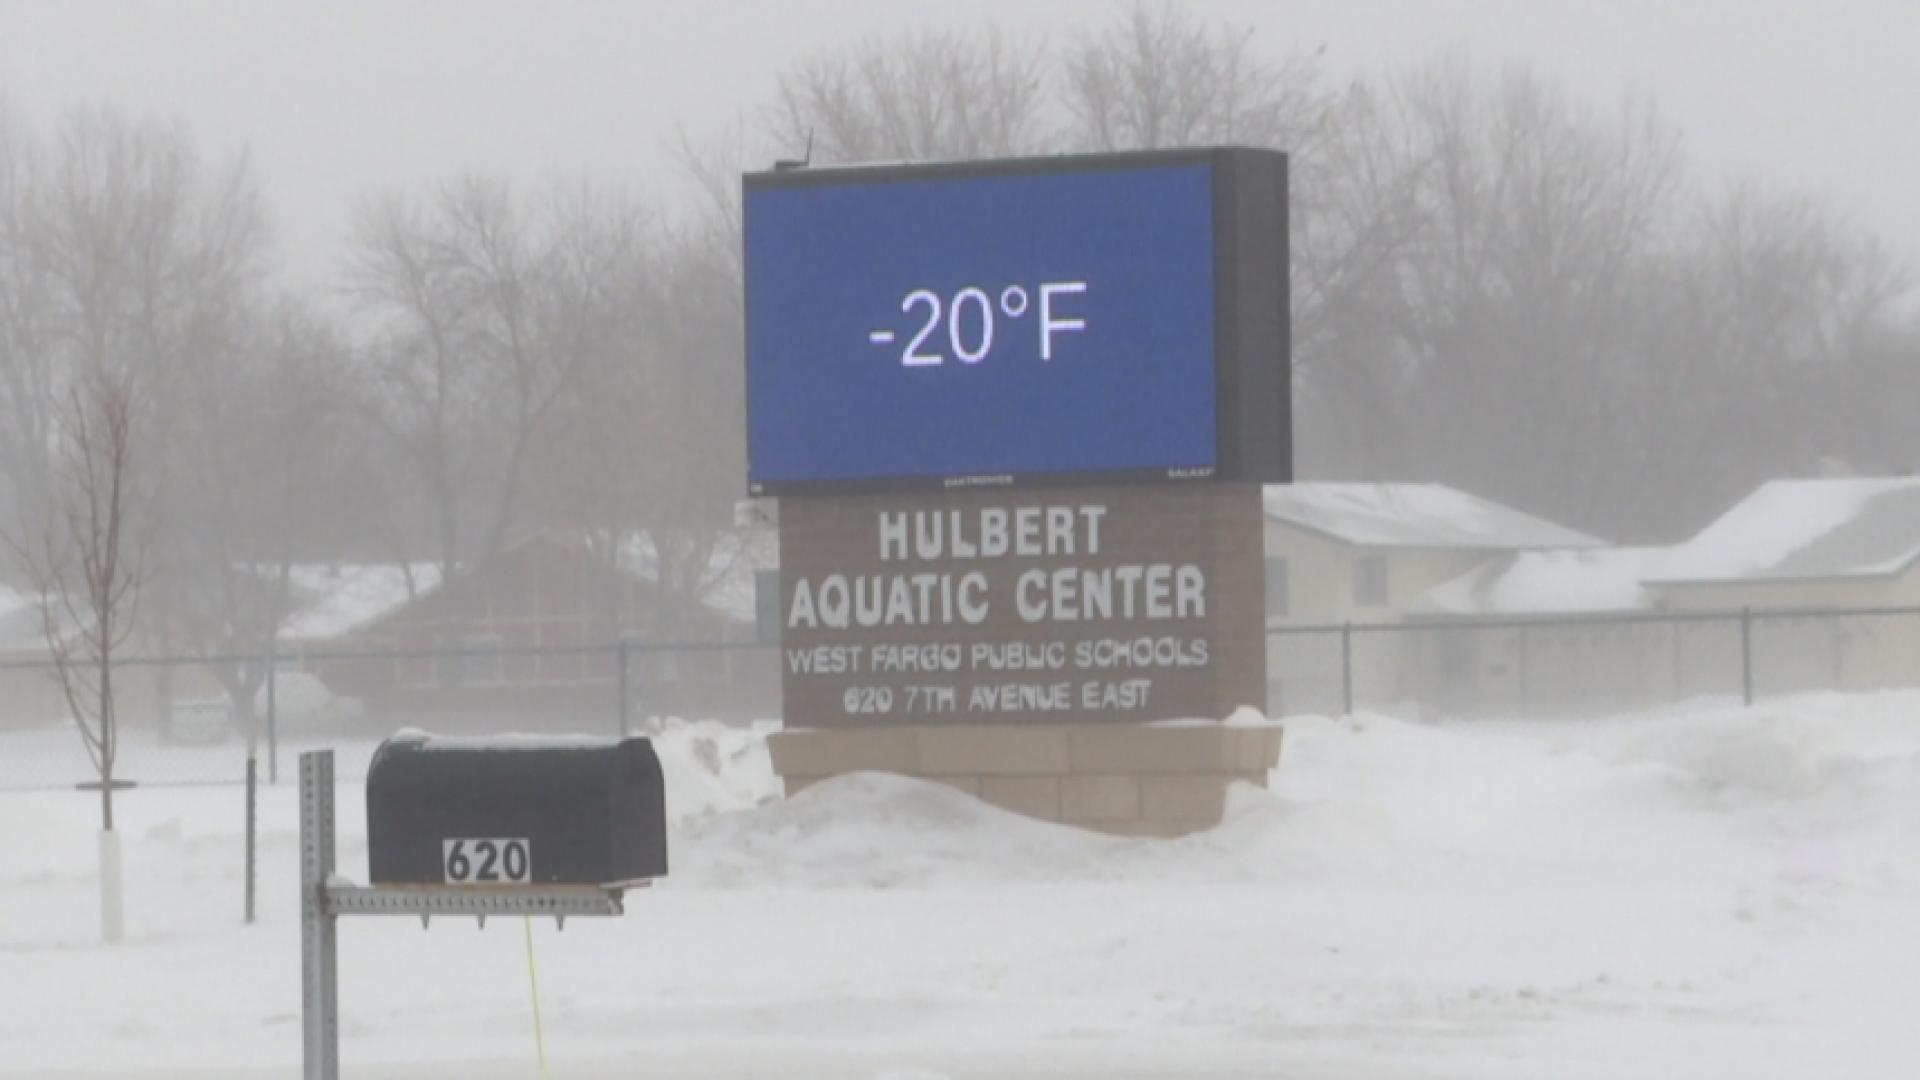 Polar Vortex Brings Bitter Cold Kobi Tv Nbc5 Koti Tv Nbc2